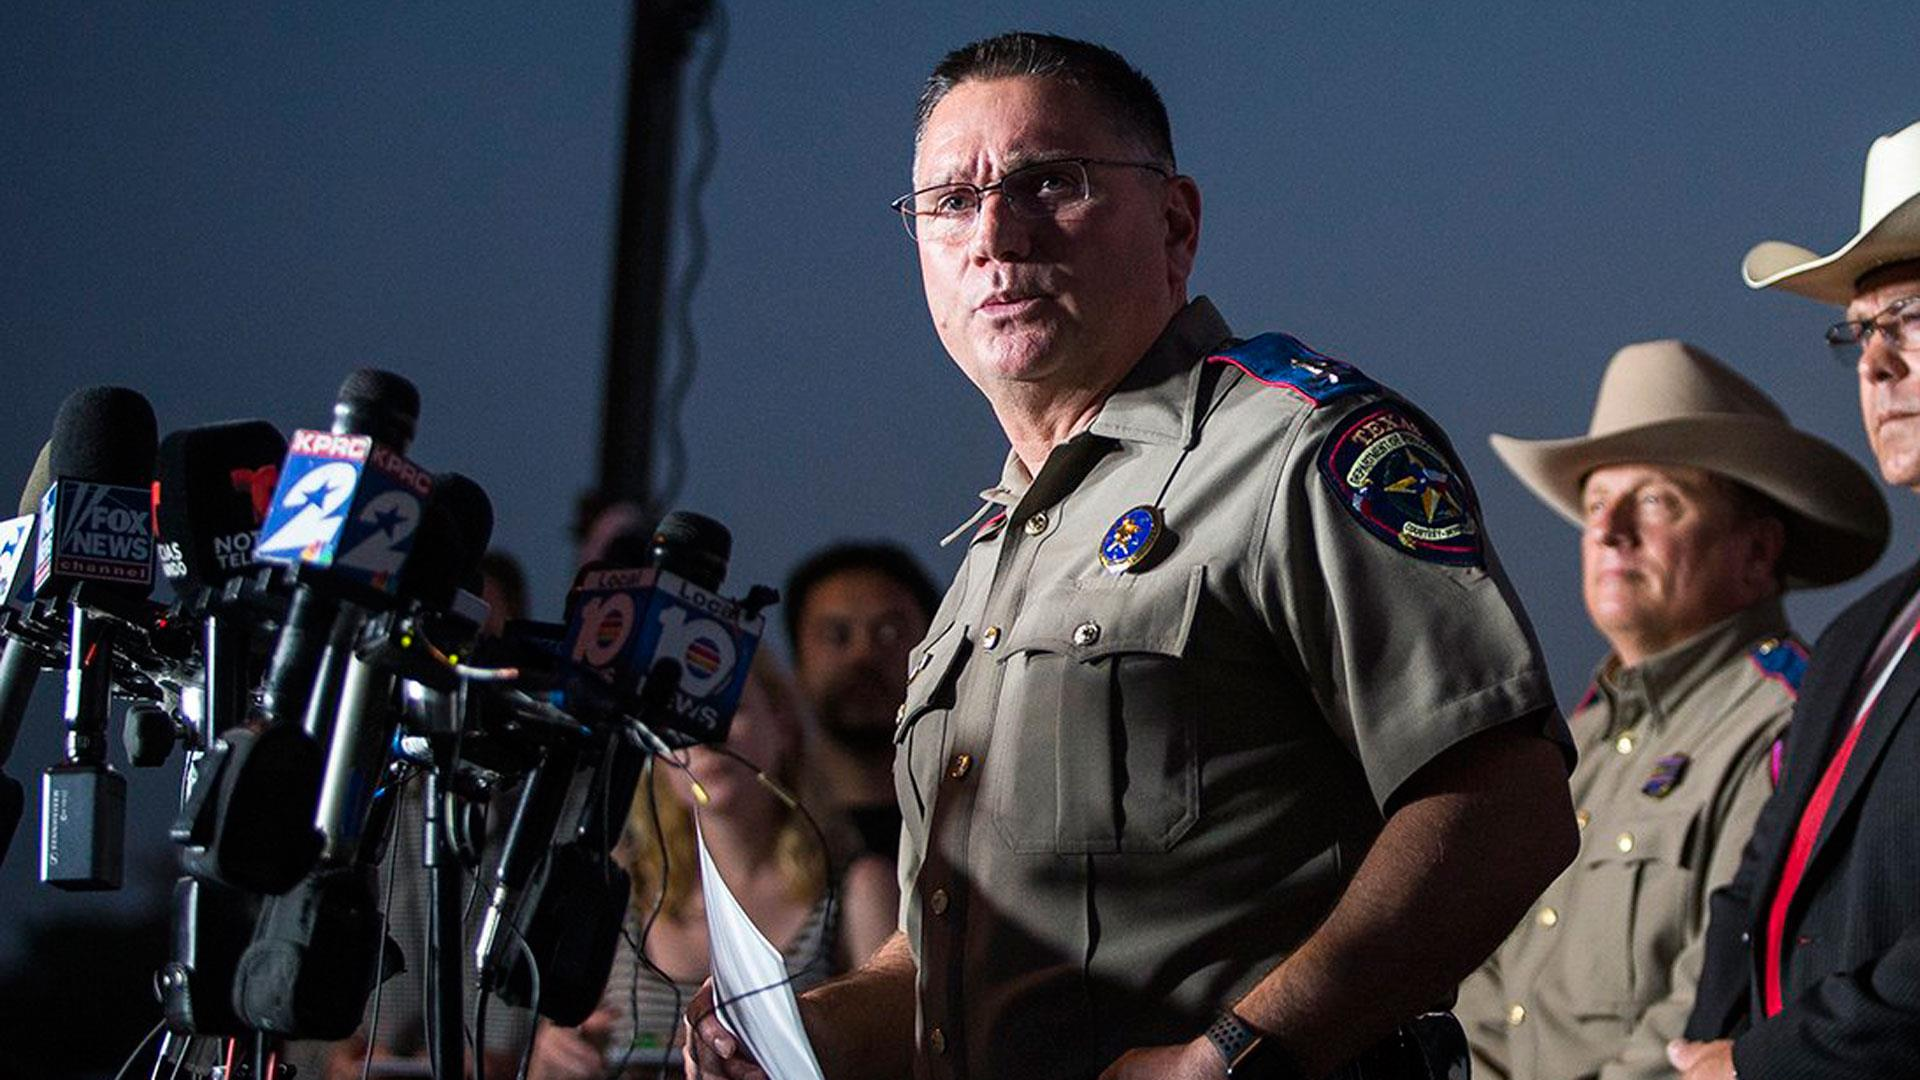 Texas Church Shooter Had 'a Purpose and a Mission' in Family Feud